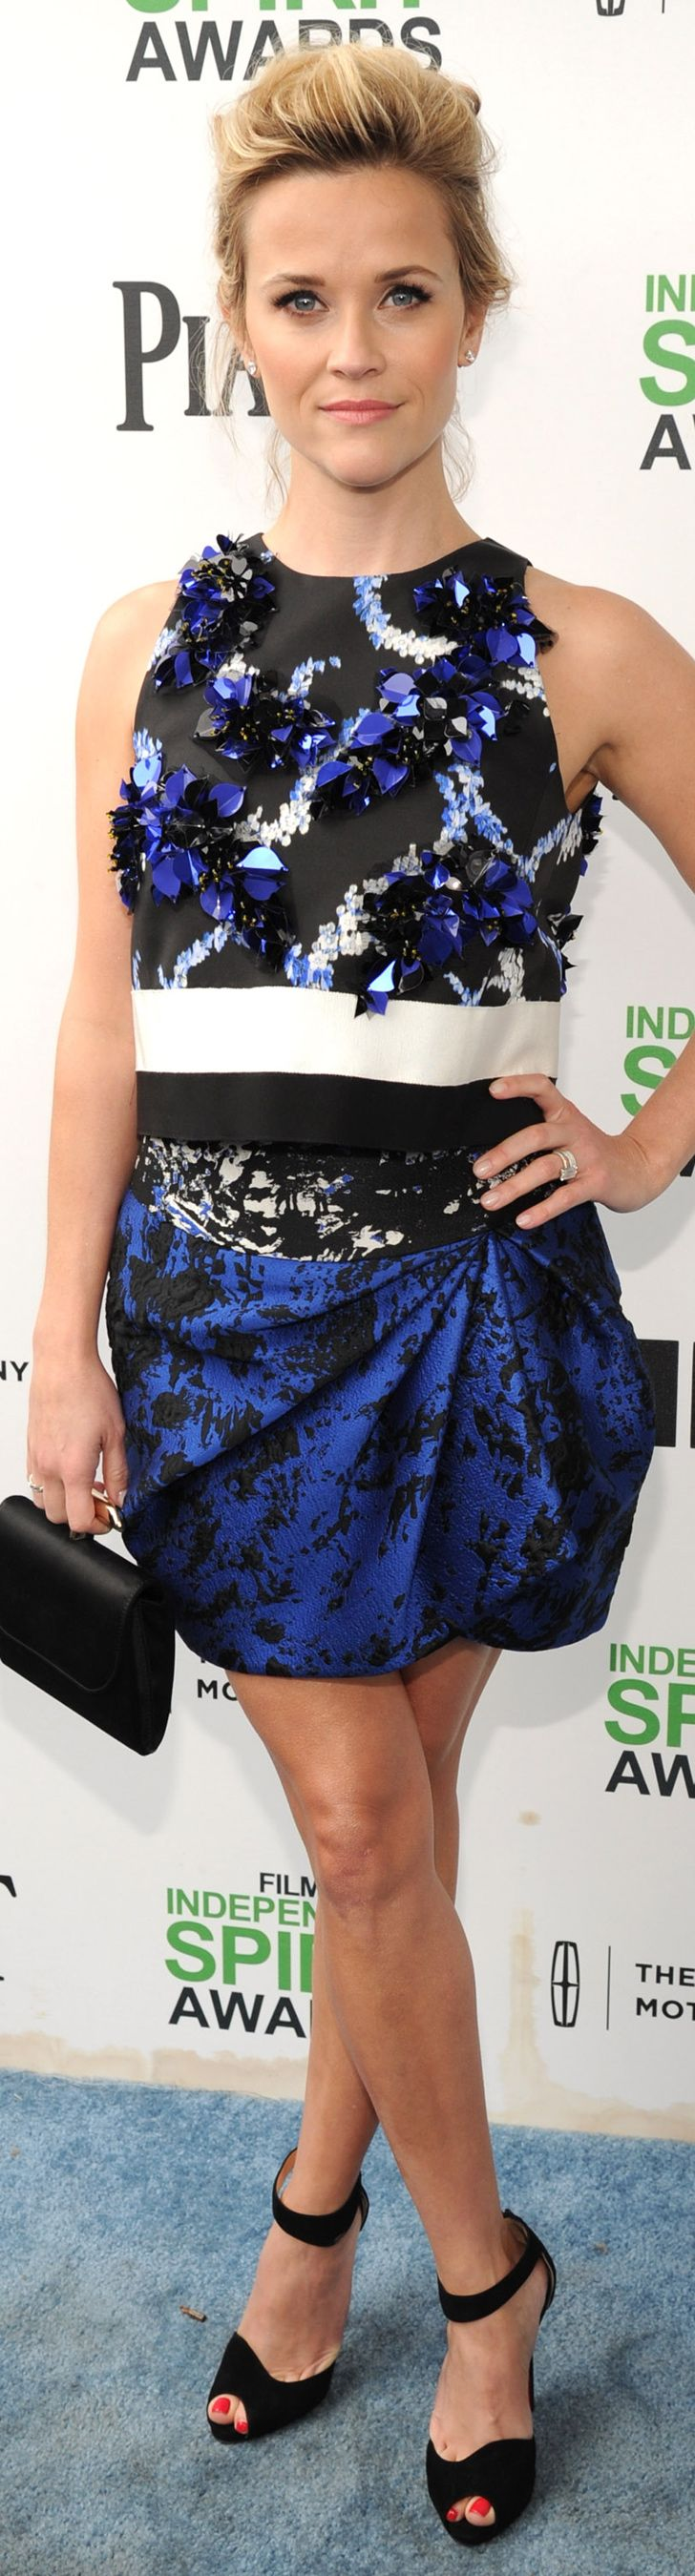 Reese Witherspoon at the Spirit Awards | The House of Beccaria